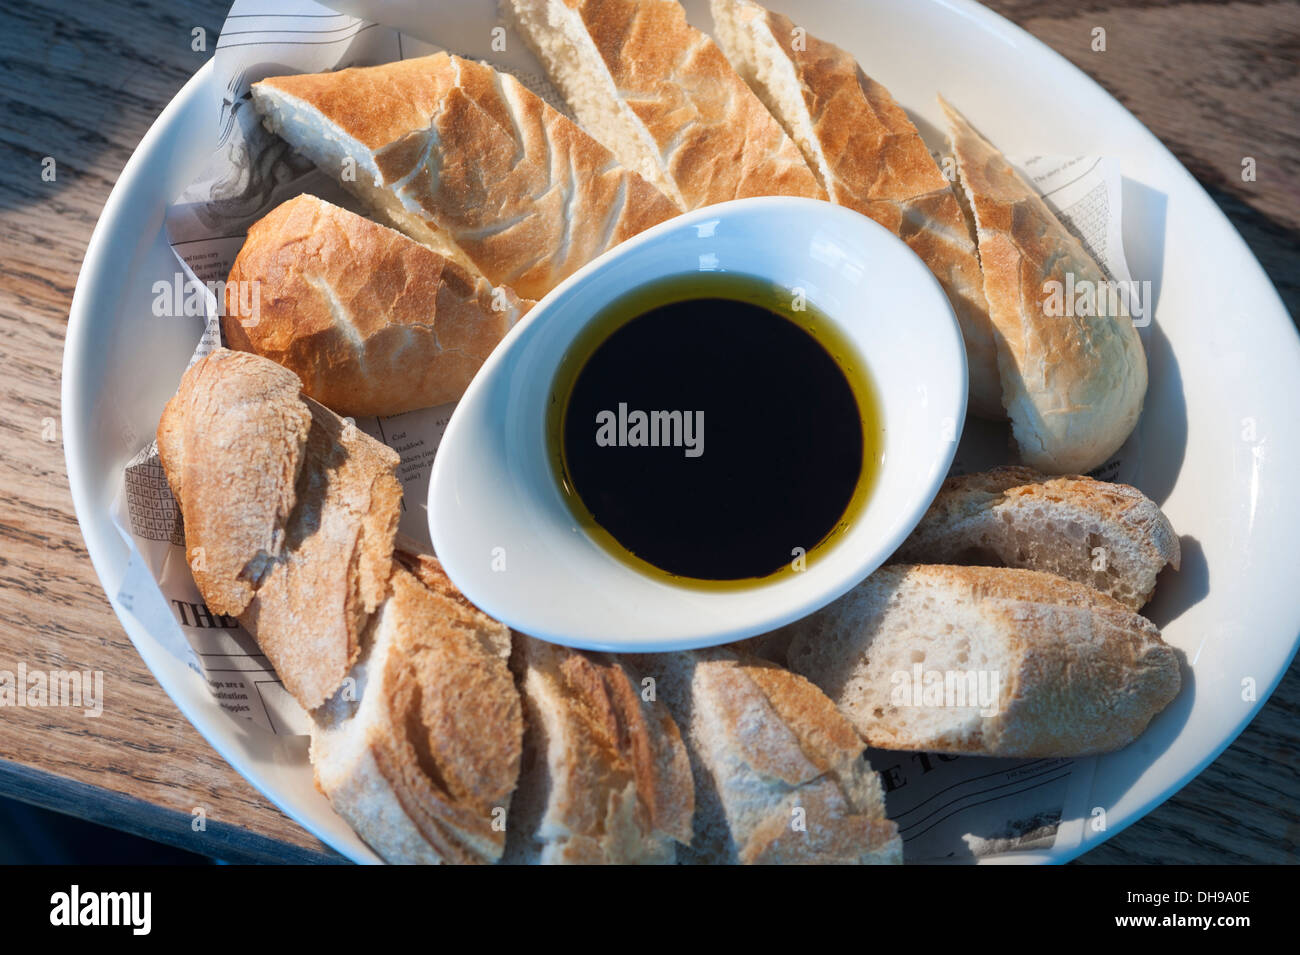 Bread served in a restaurant, with an olive oil and balsamic vinegar dip in the centre of the plate. - Stock Image